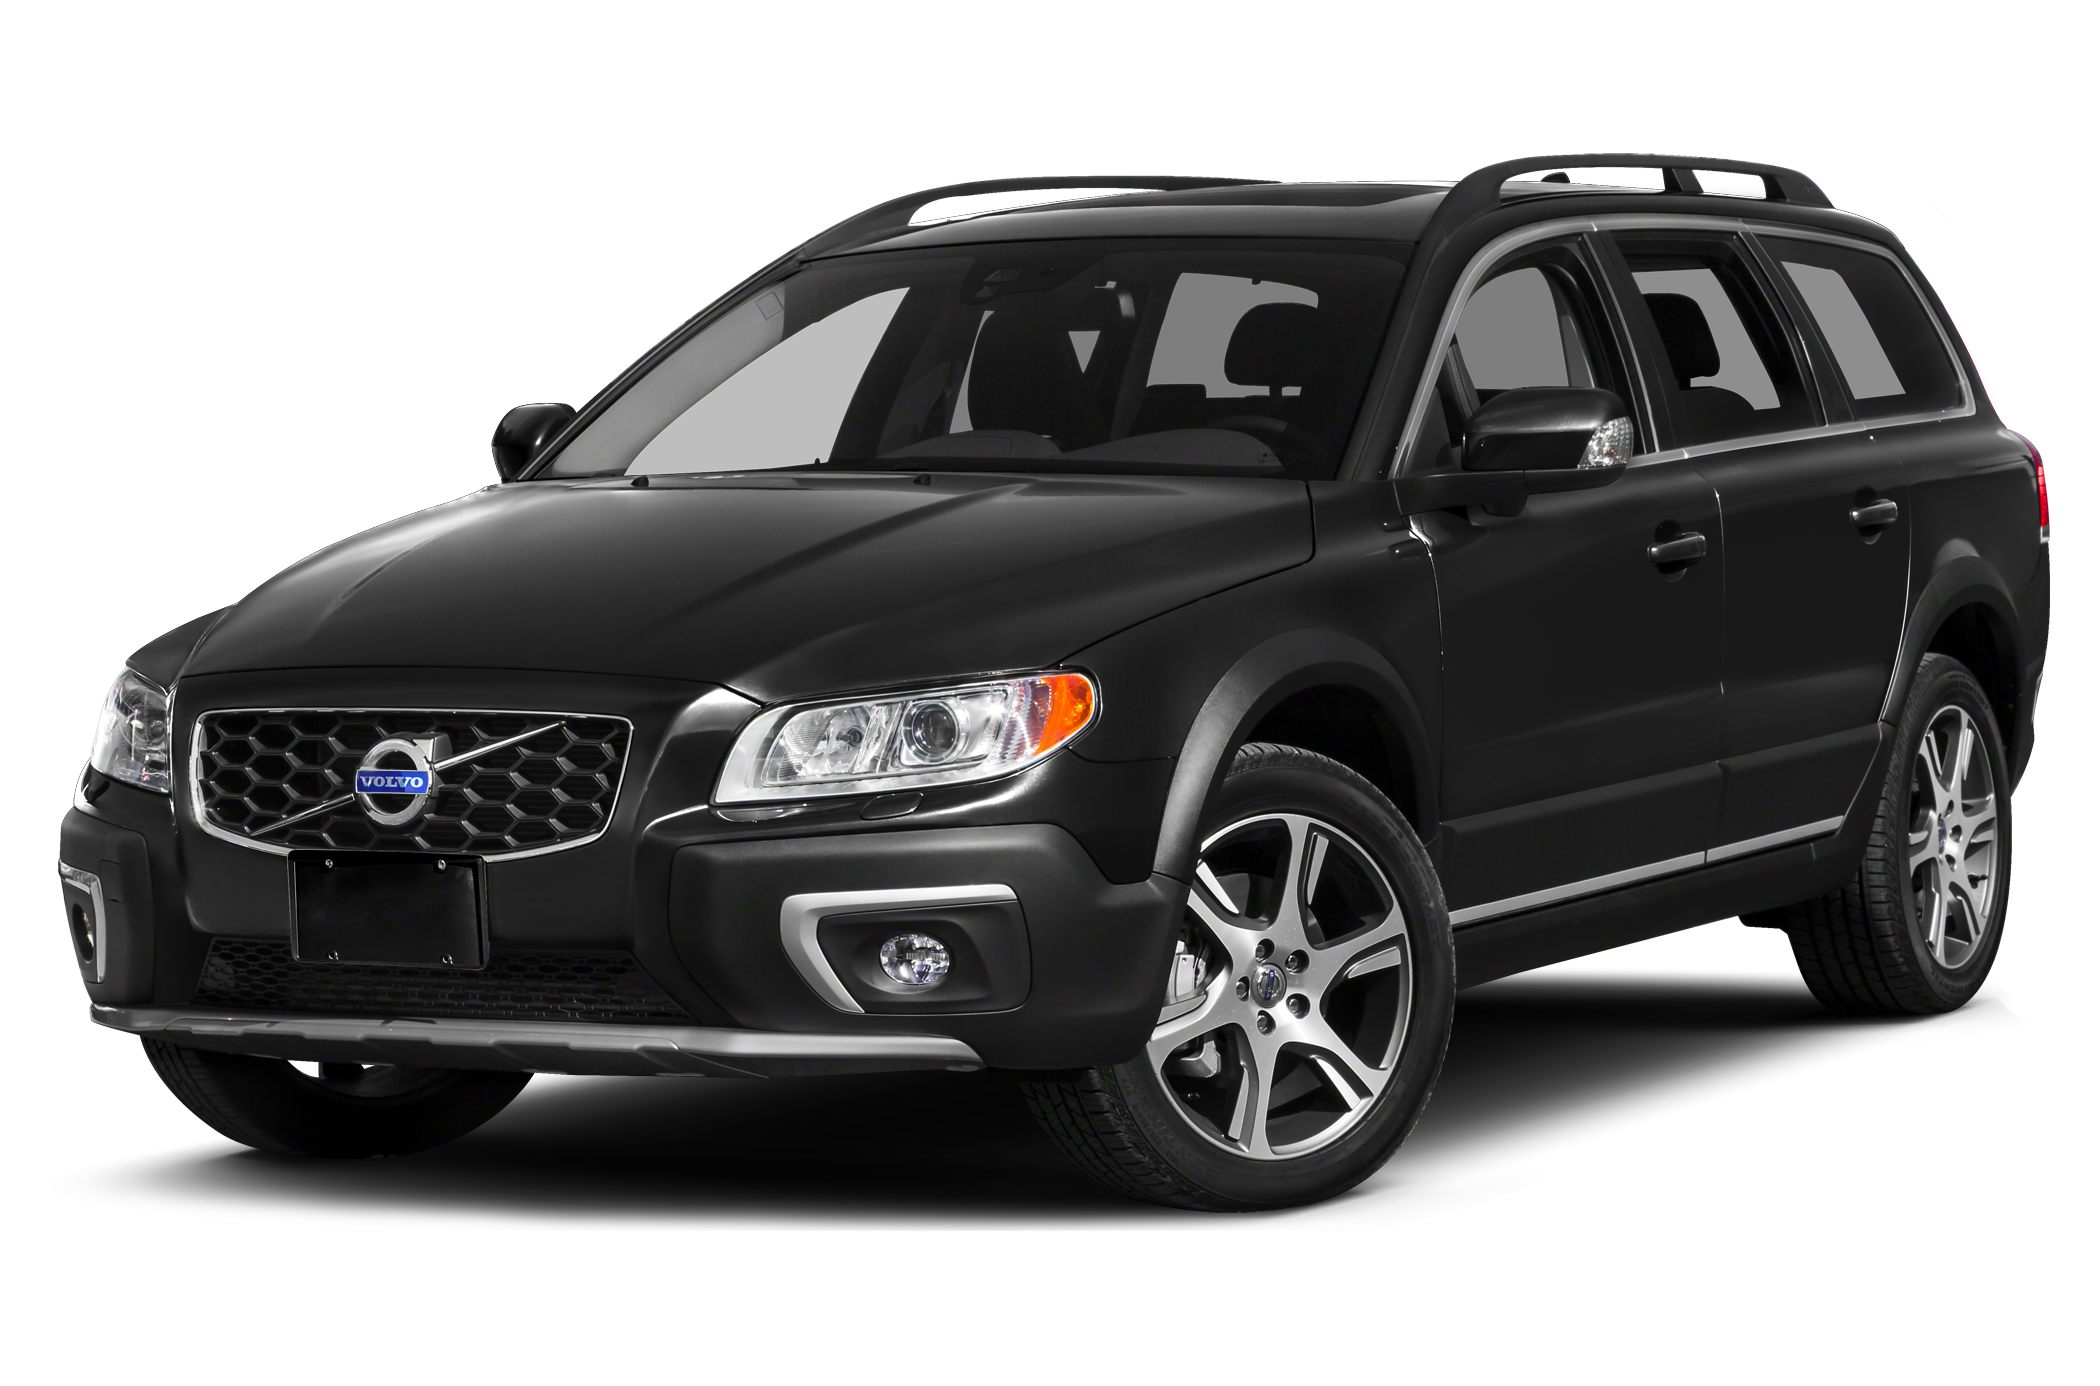 volvo xc70 news photos and buying information autoblog. Black Bedroom Furniture Sets. Home Design Ideas